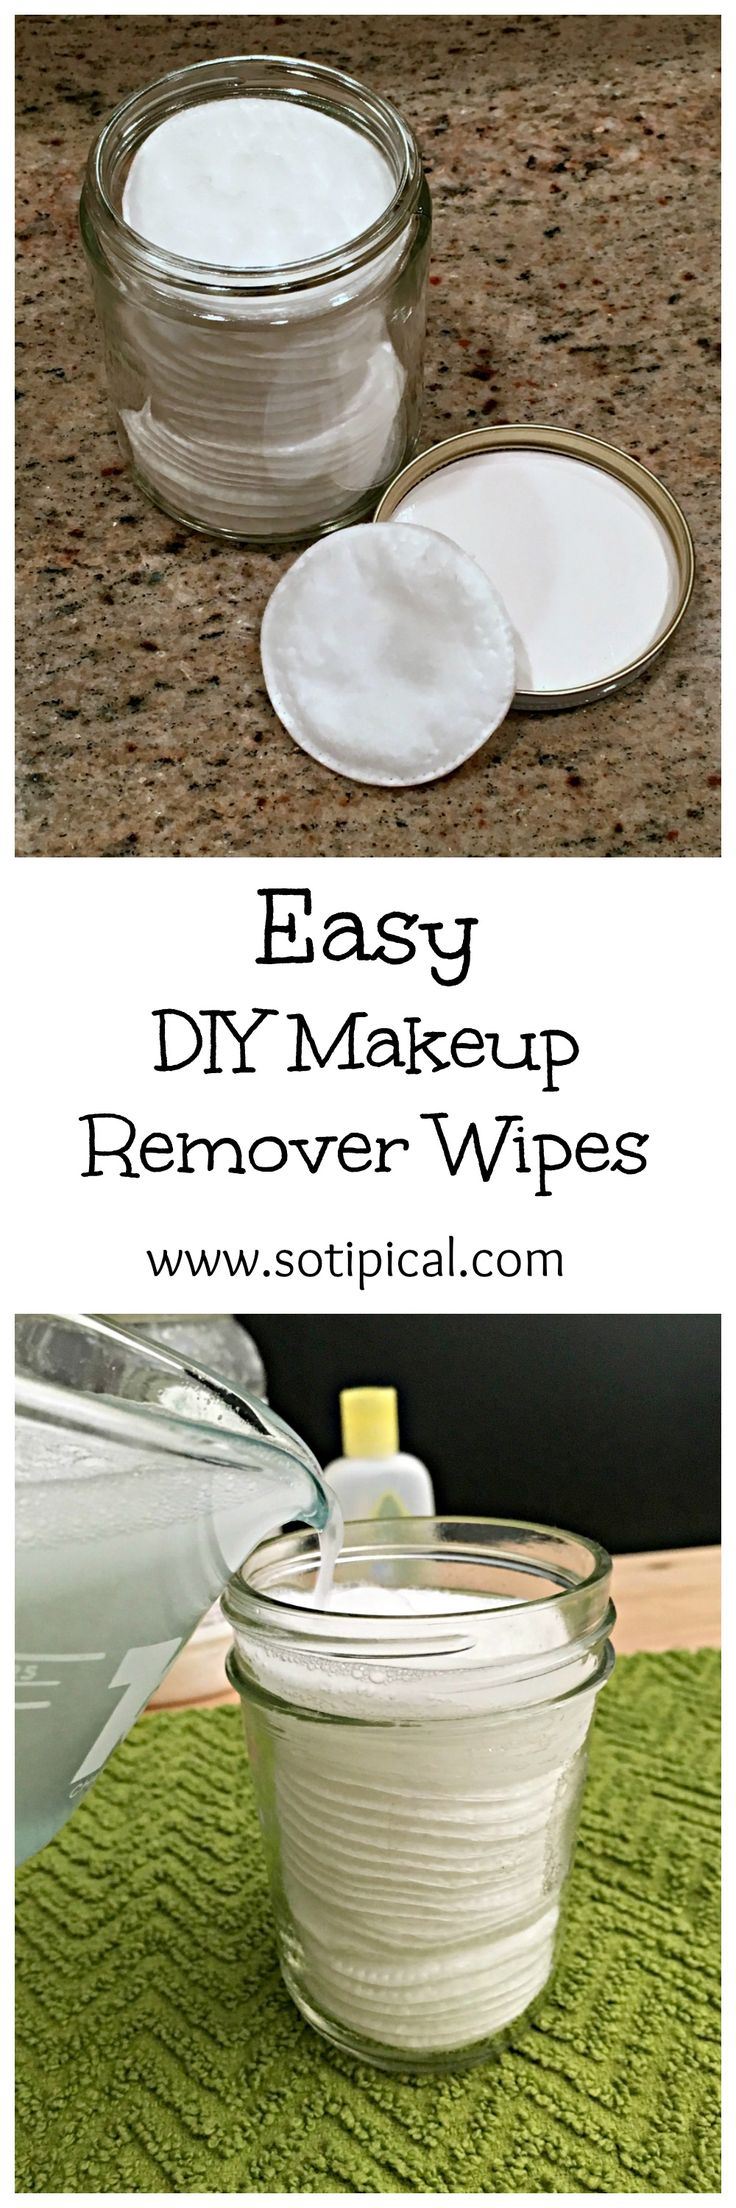 Easy DIY Makeup Remover Wipes. Here is an easy recipe to make your own eye makeup remover at home and it will save you money too!